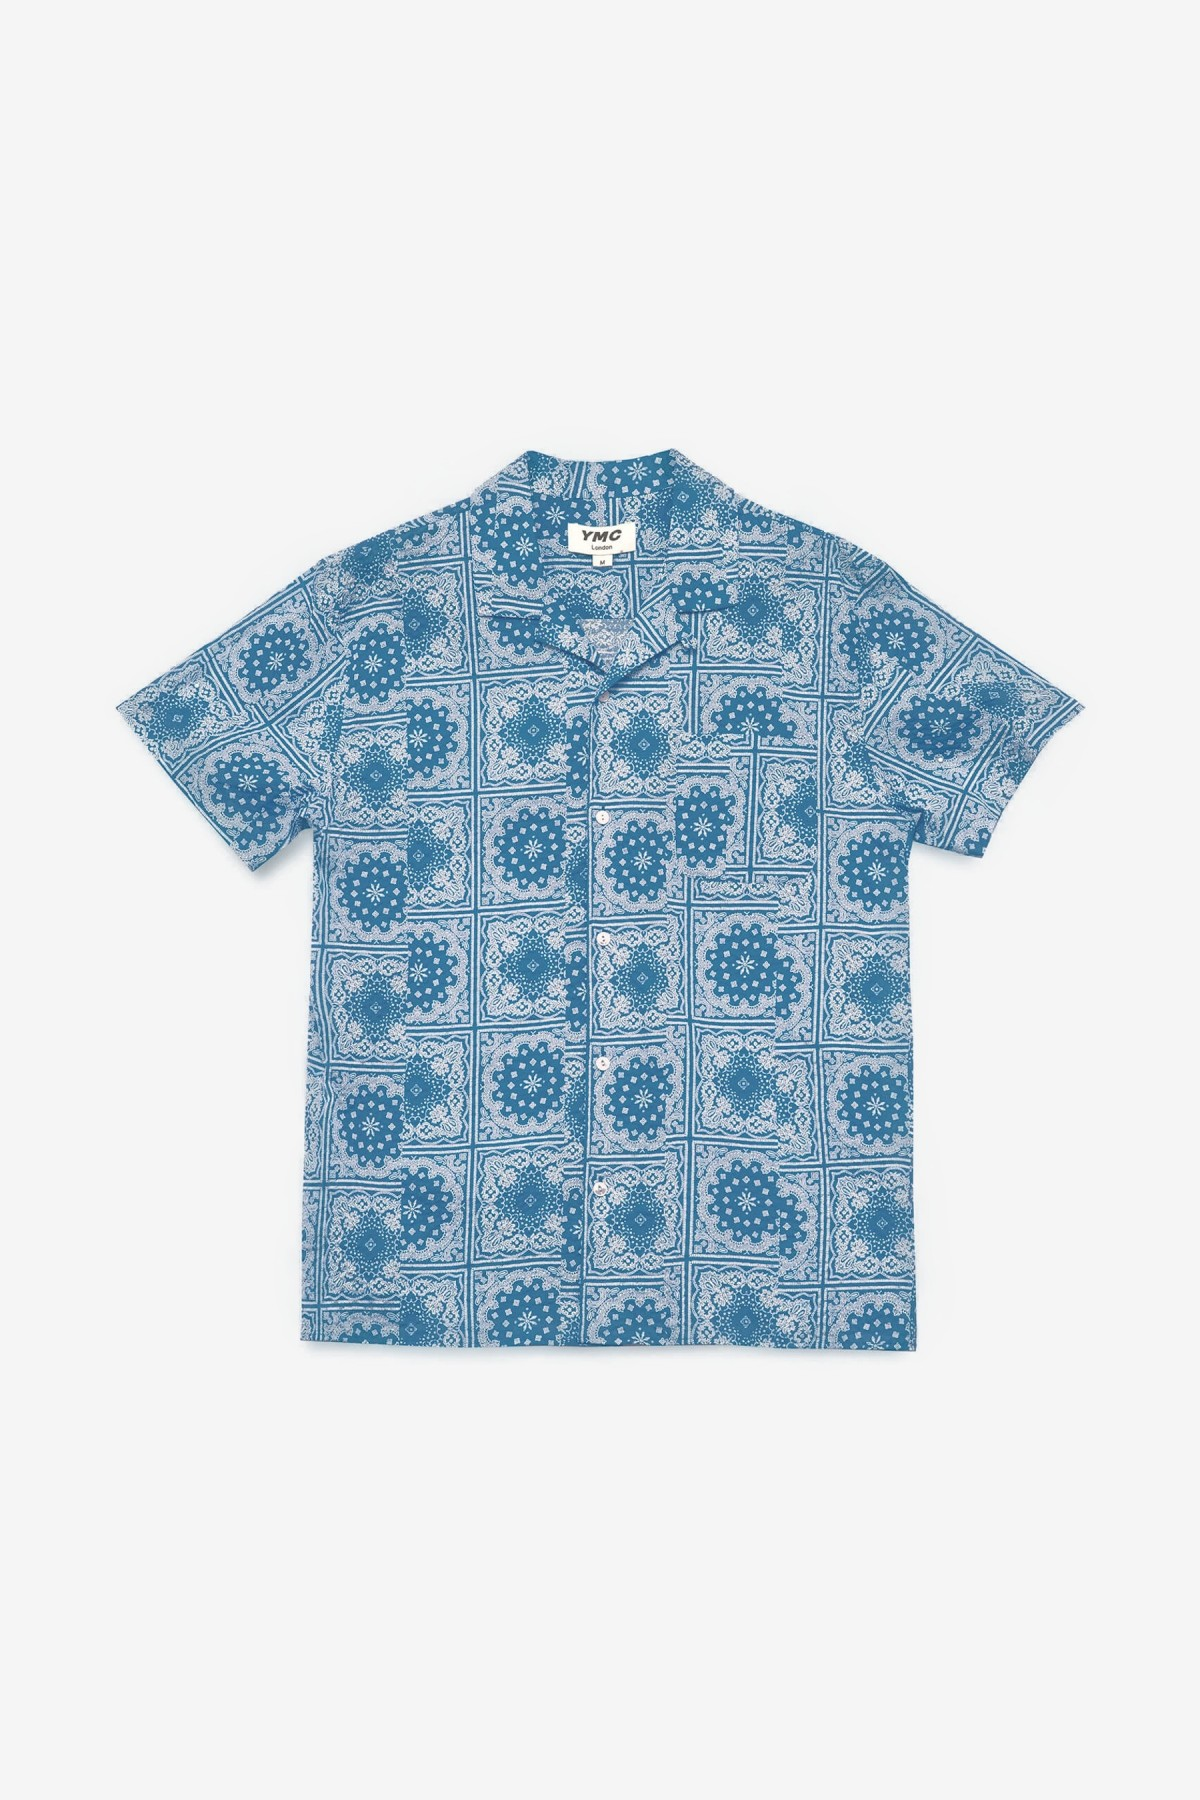 YMC You Must Create Malick Shirt in Blue